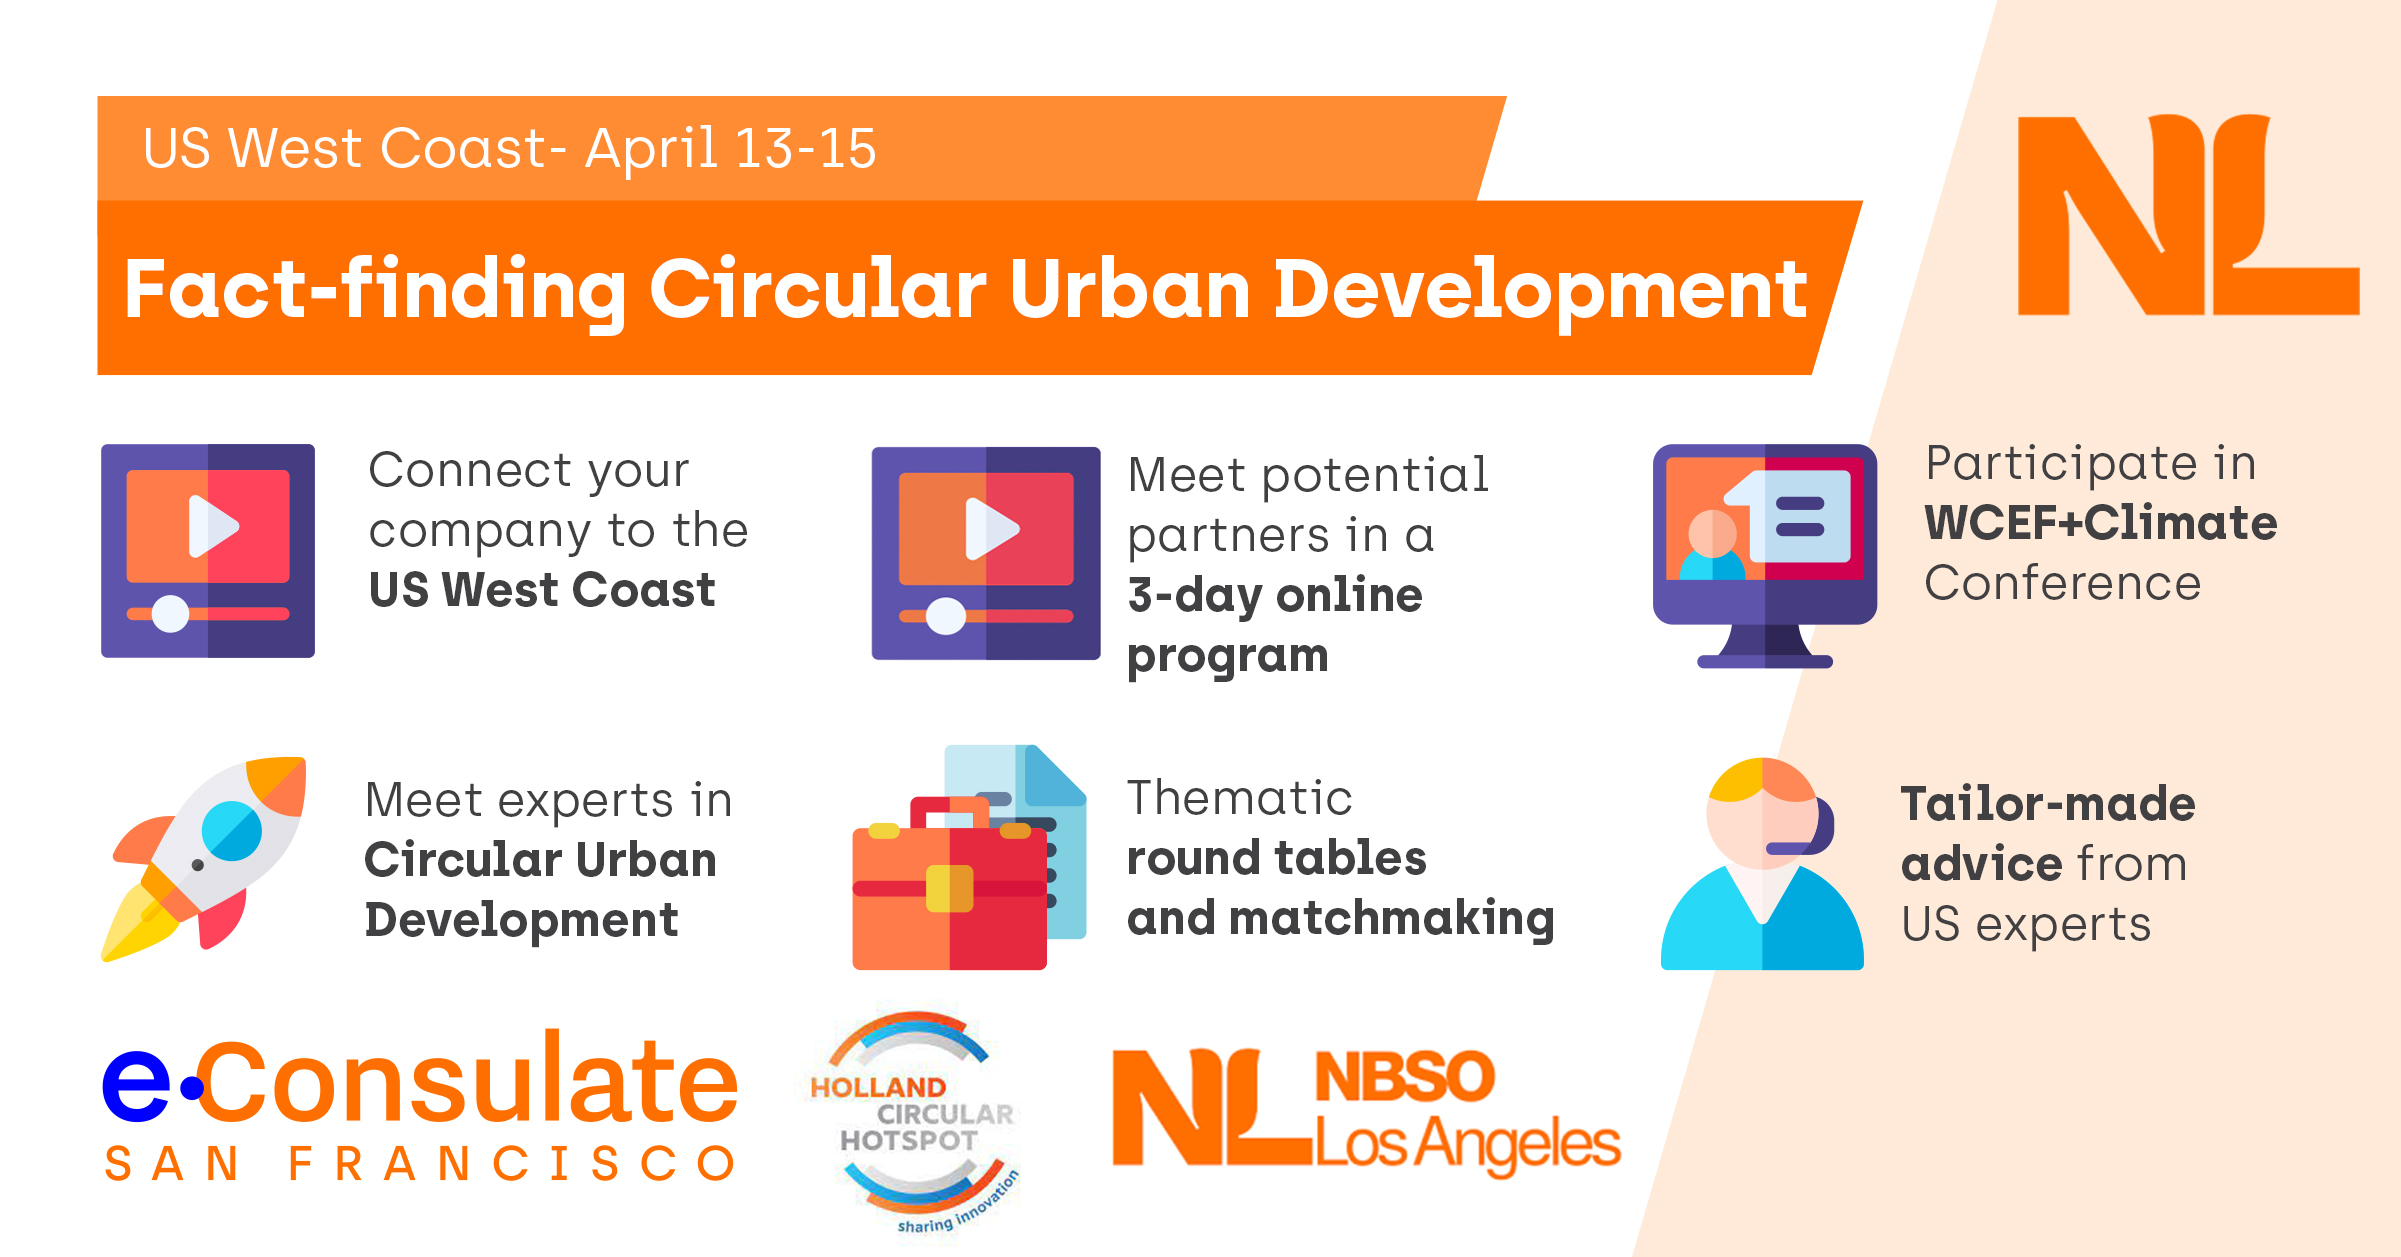 Fact-finding mission: Circular Urban Development, US West Coast